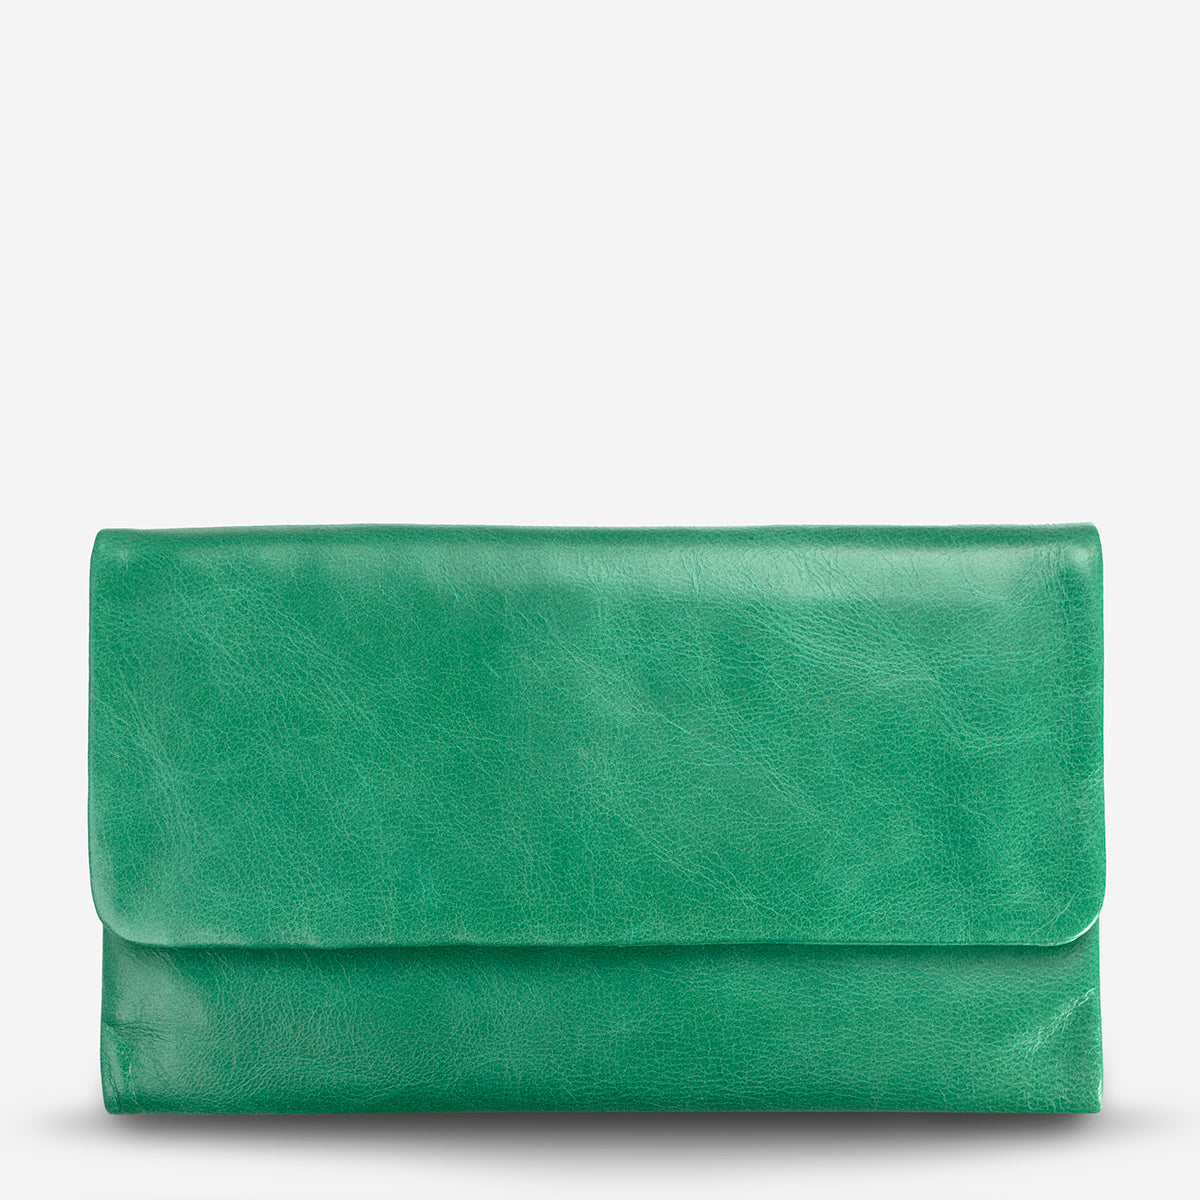 Status Anxiety Audrey Leather Wallet - Emerald